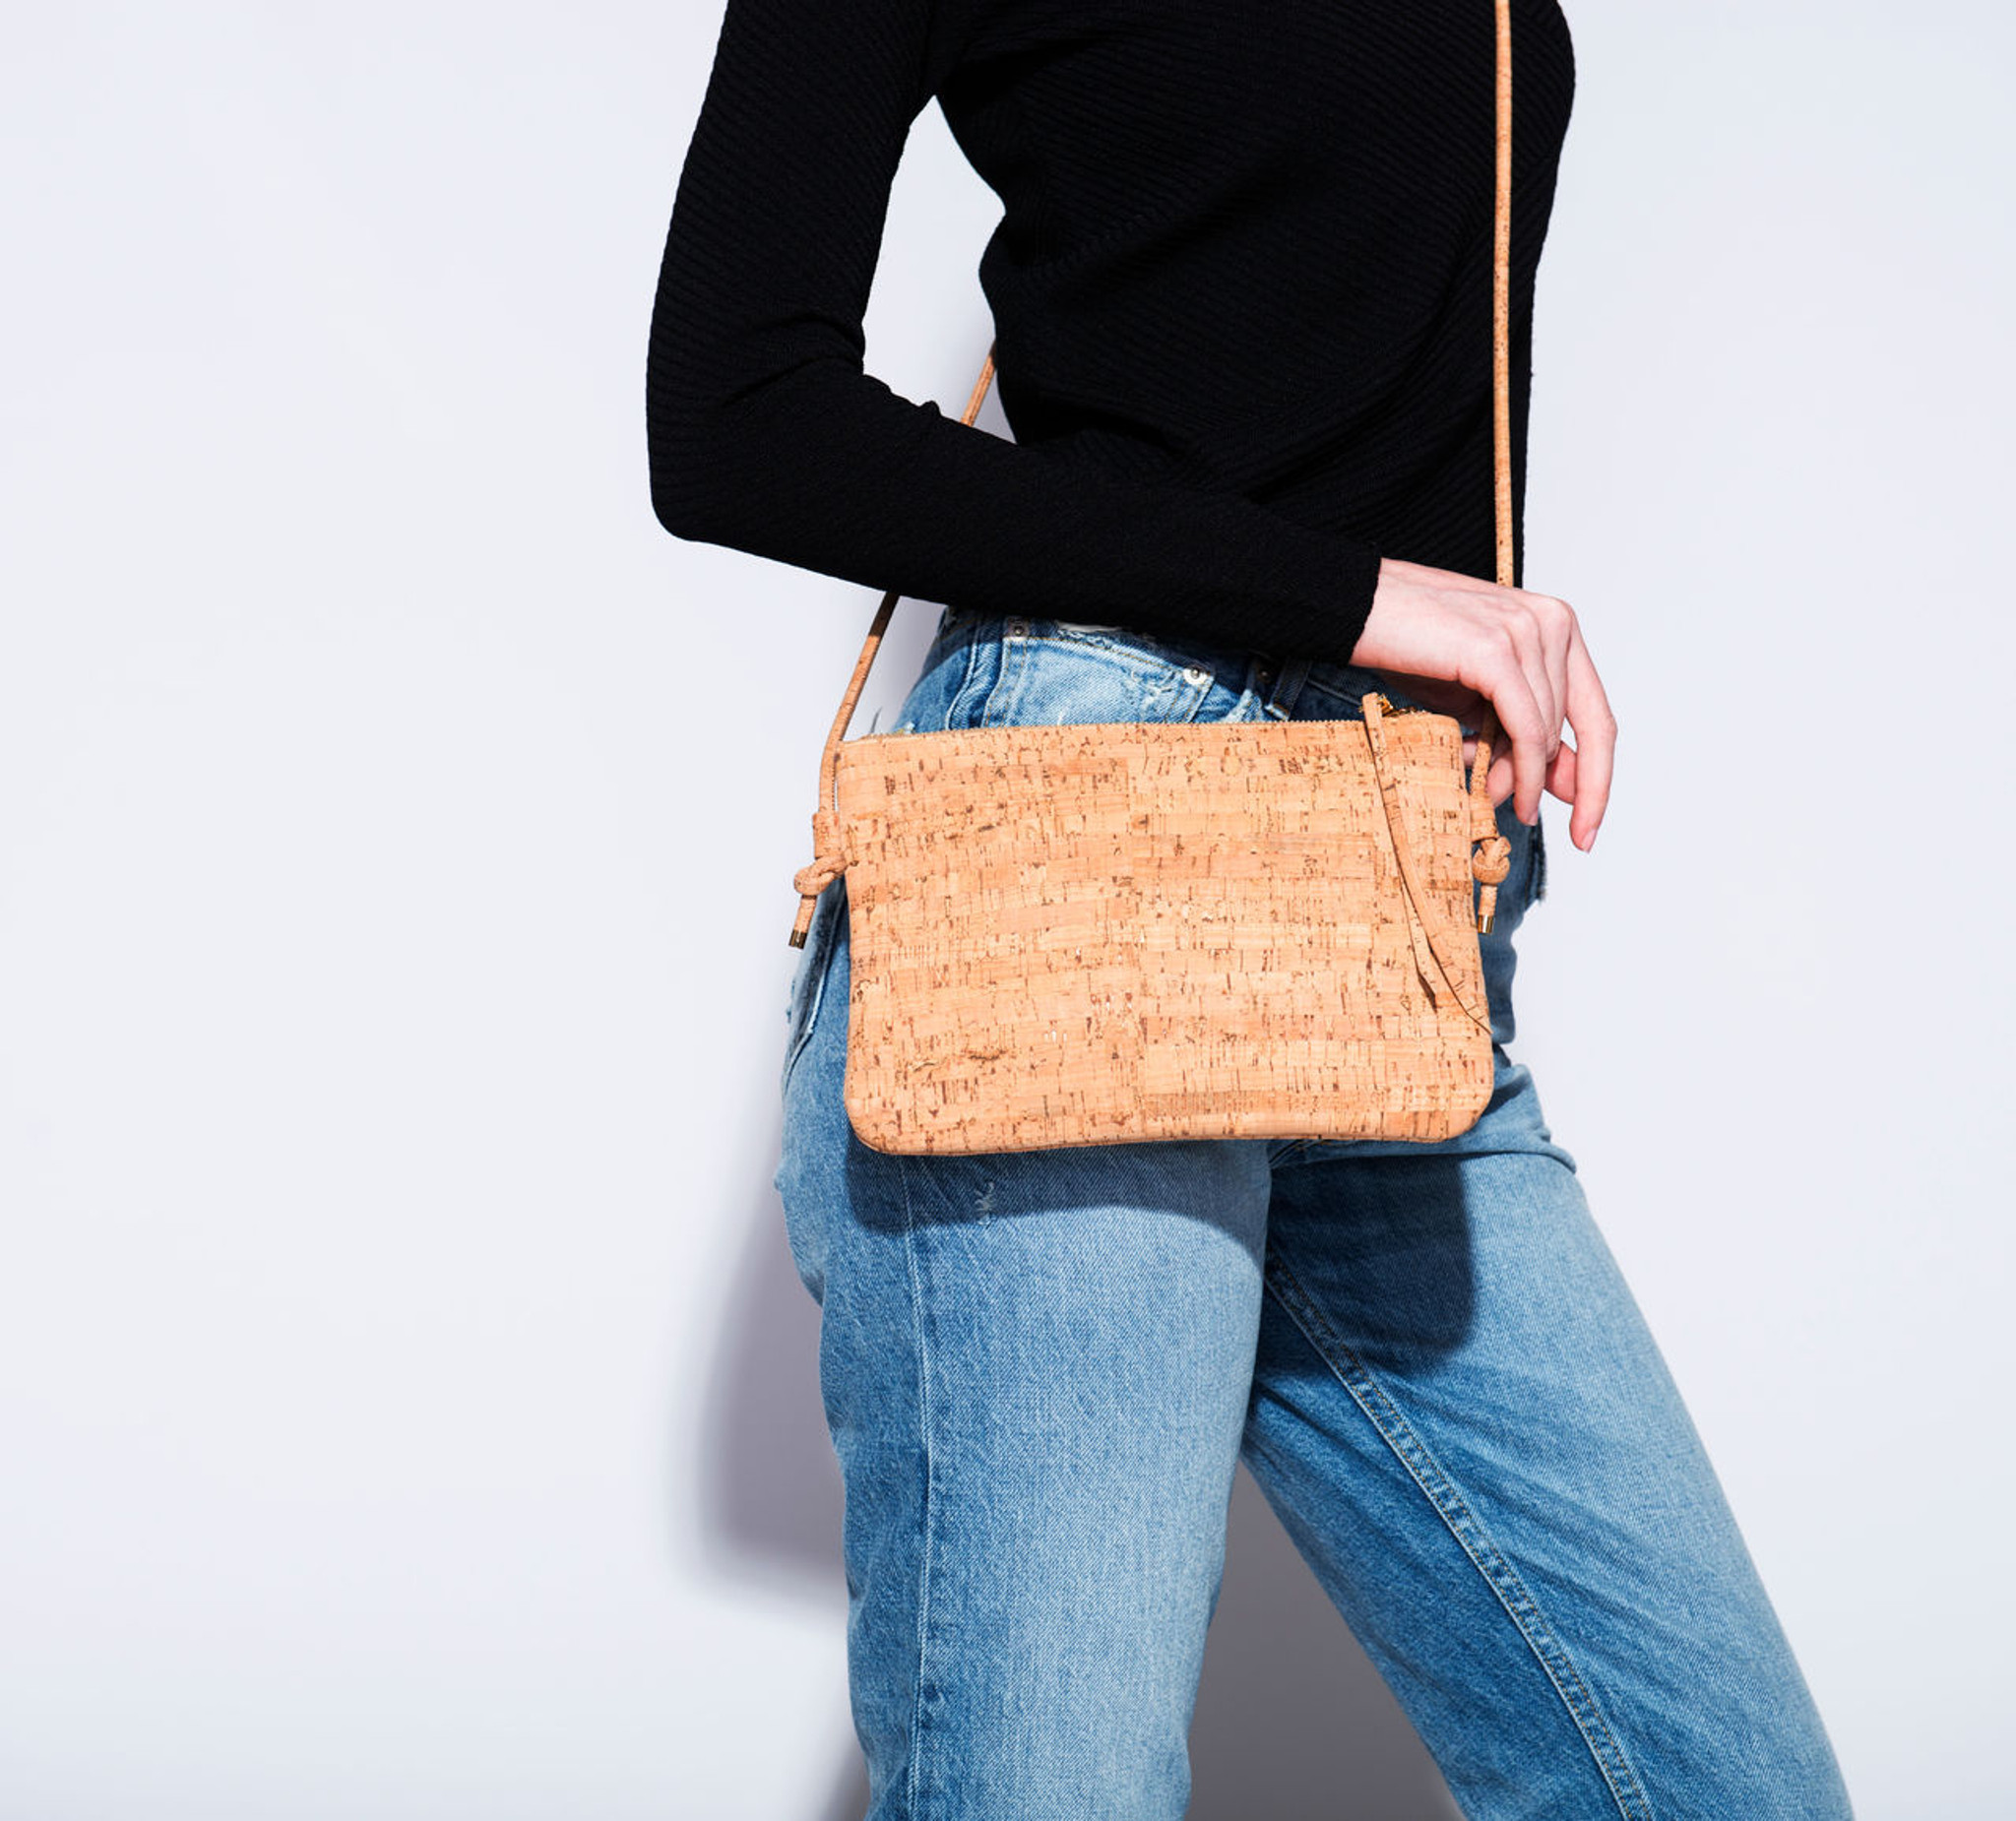 Cork Strap Crossbody Purse in Fennel Cork